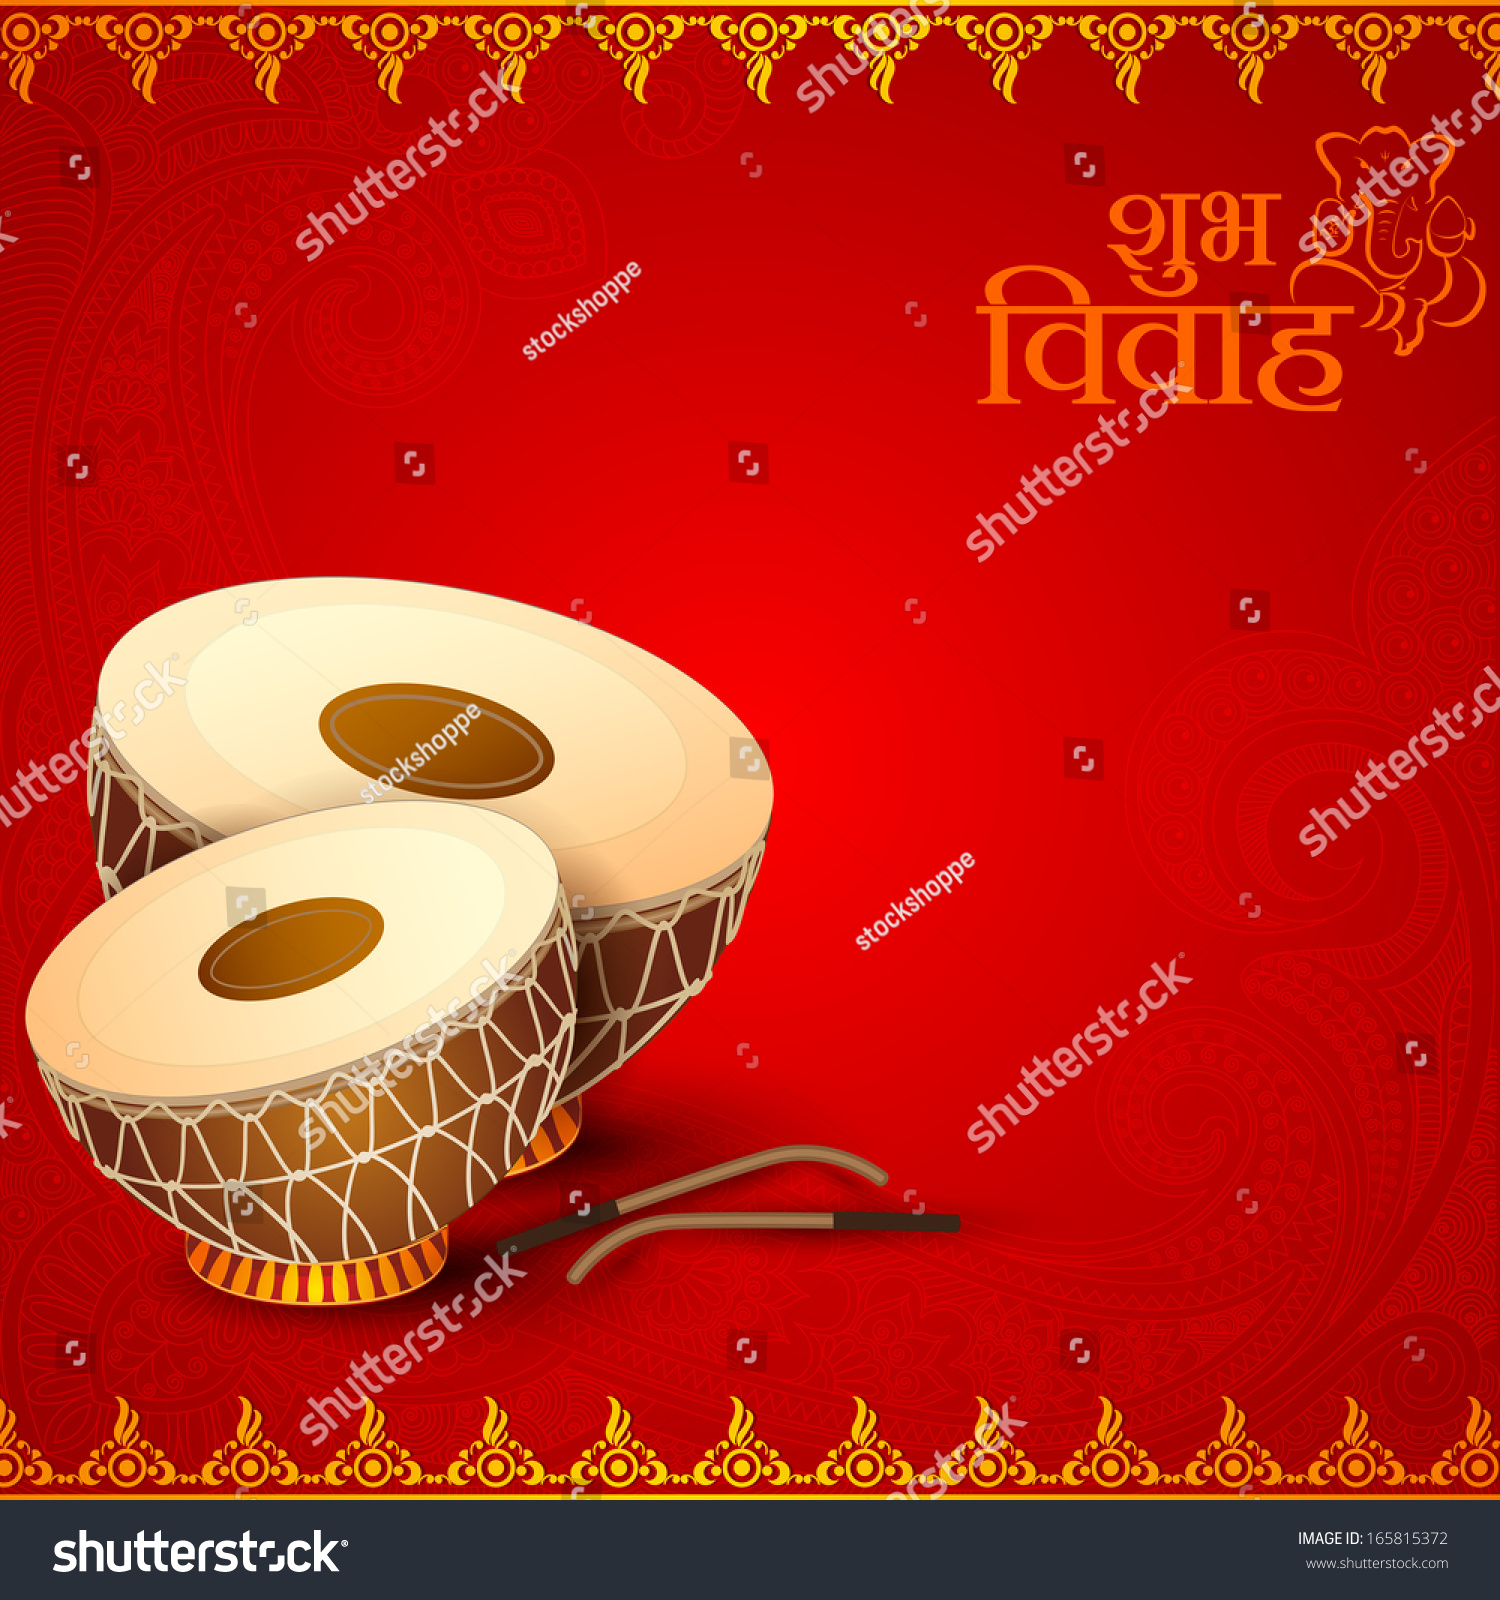 Vector Illustration Of Drum In Indian Wedding Invitation ...